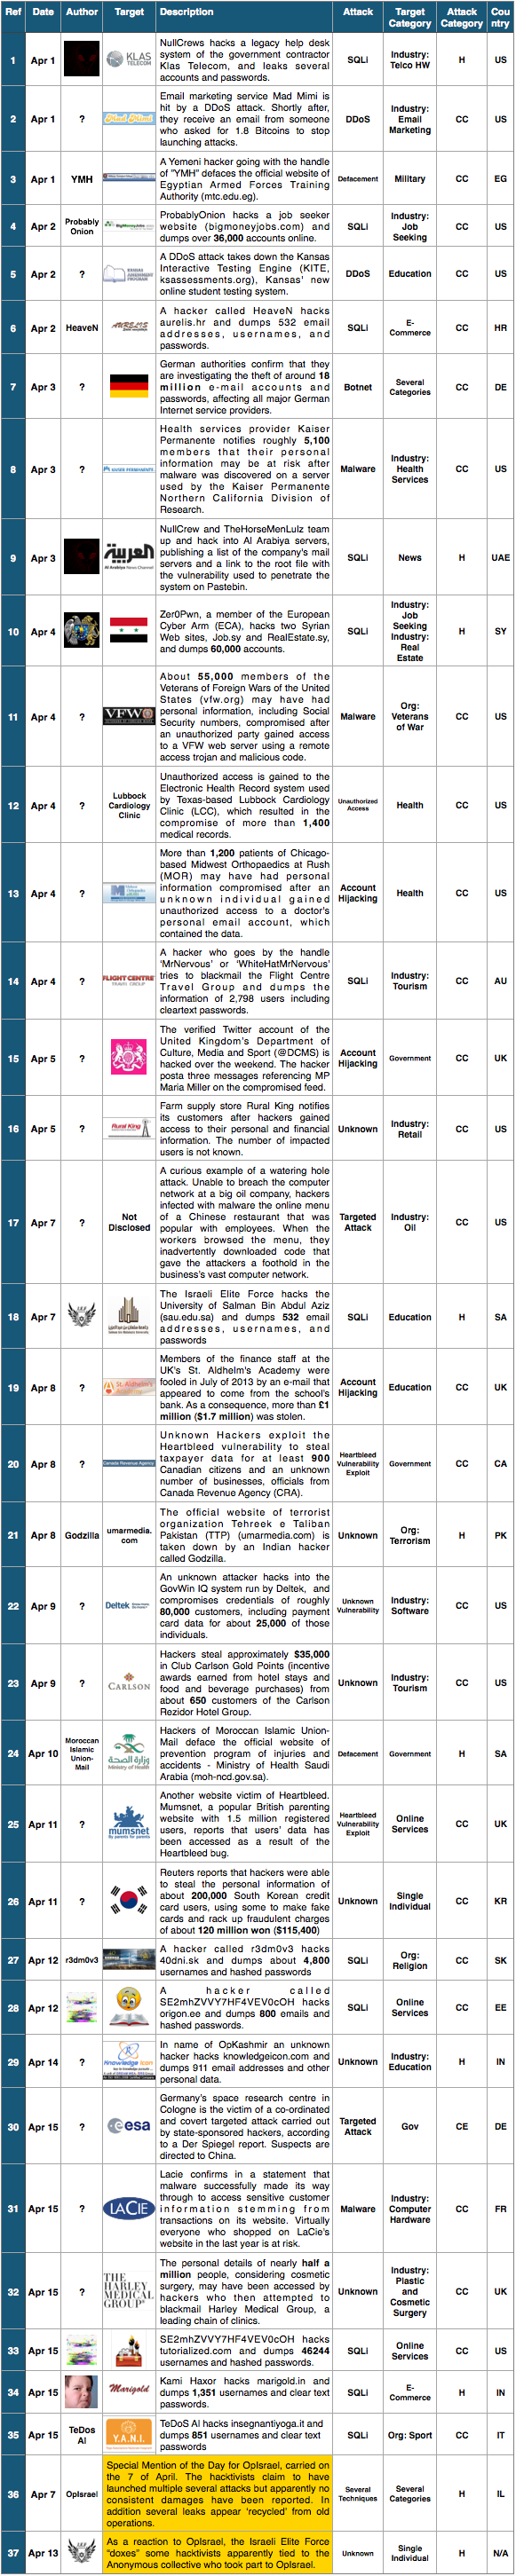 1-15 Apr 2014 Cyber Attacks Timelines